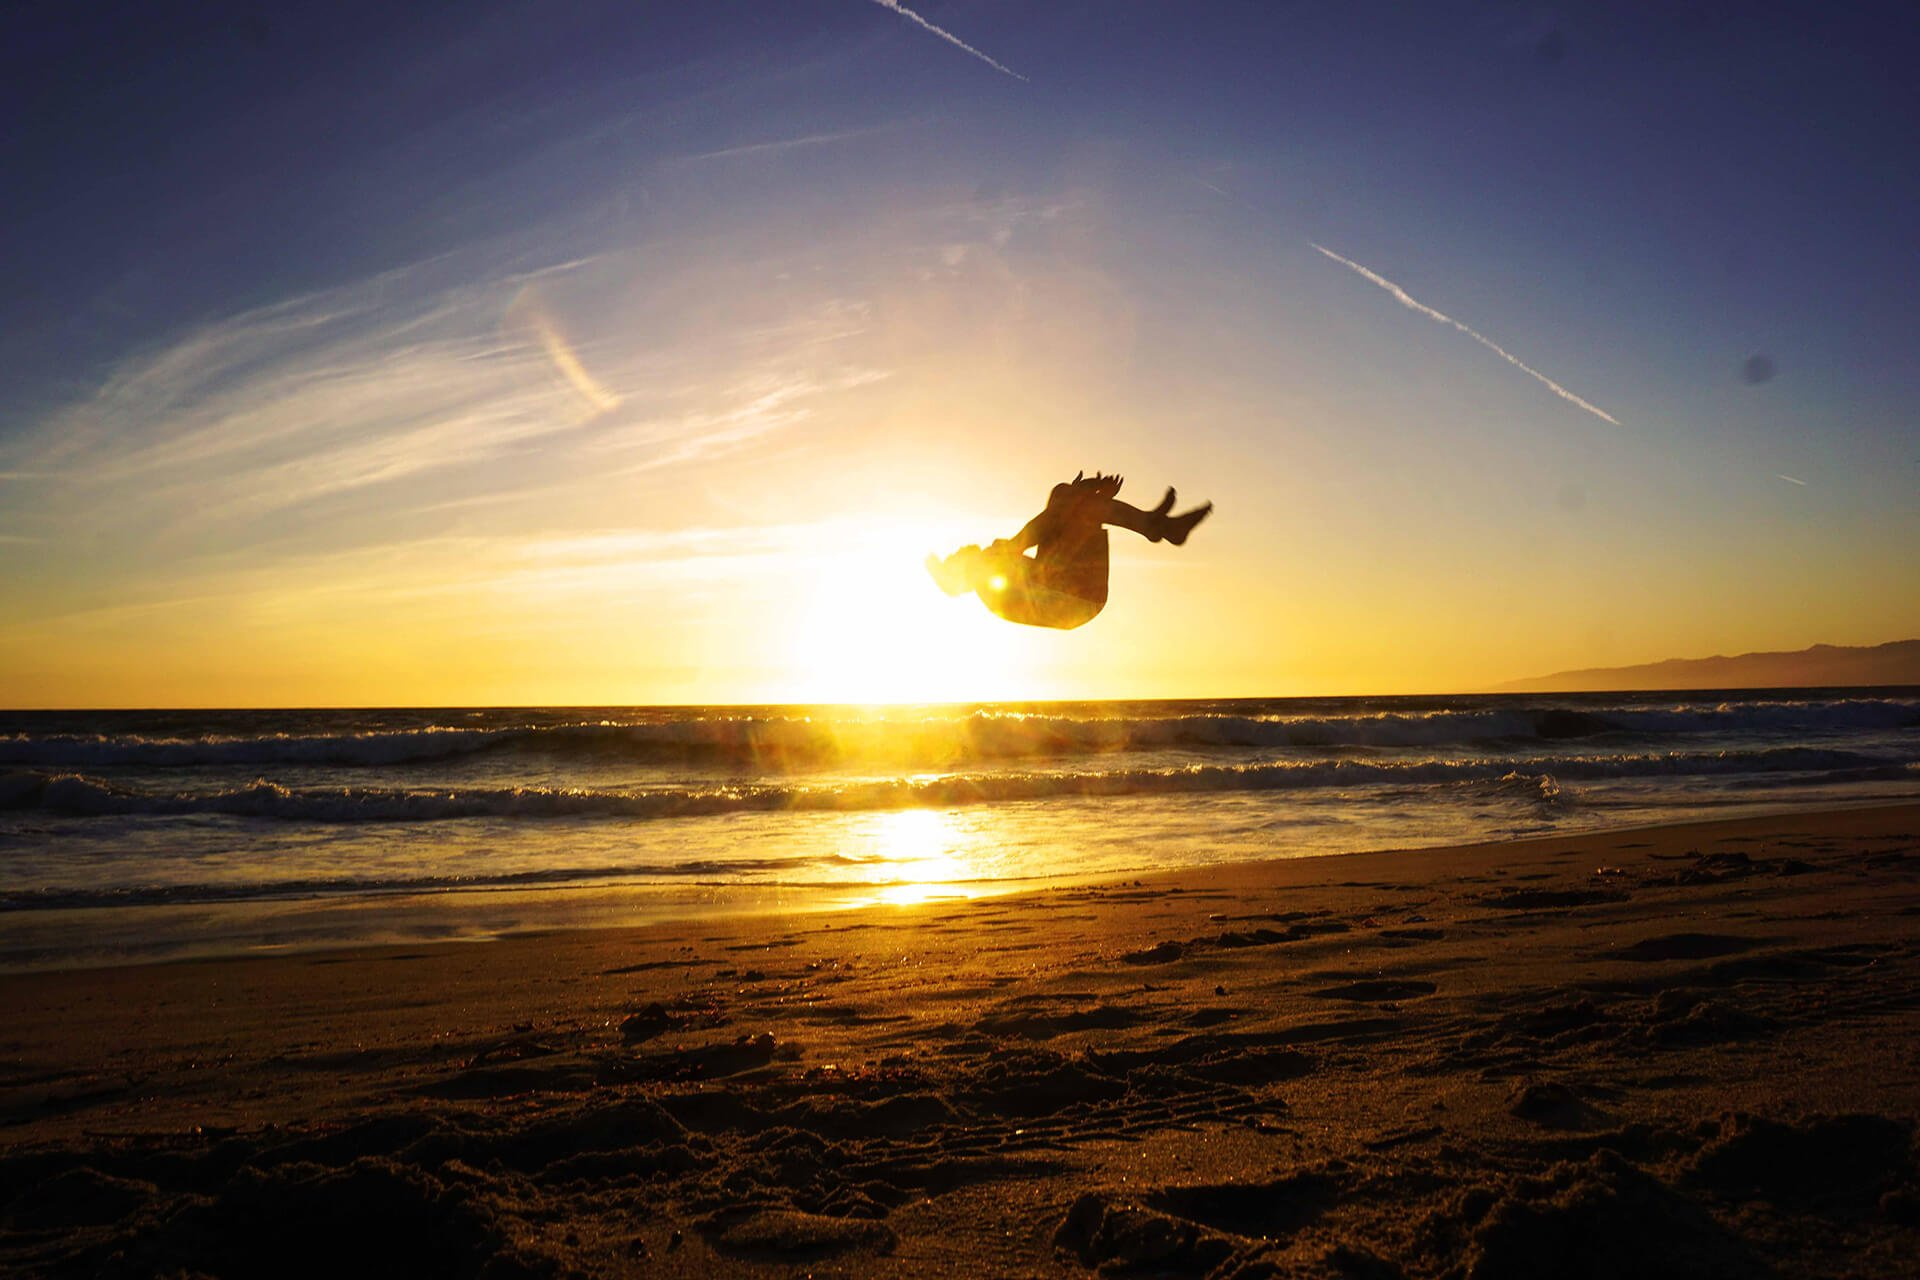 Clemens Millauer backflip on the beach